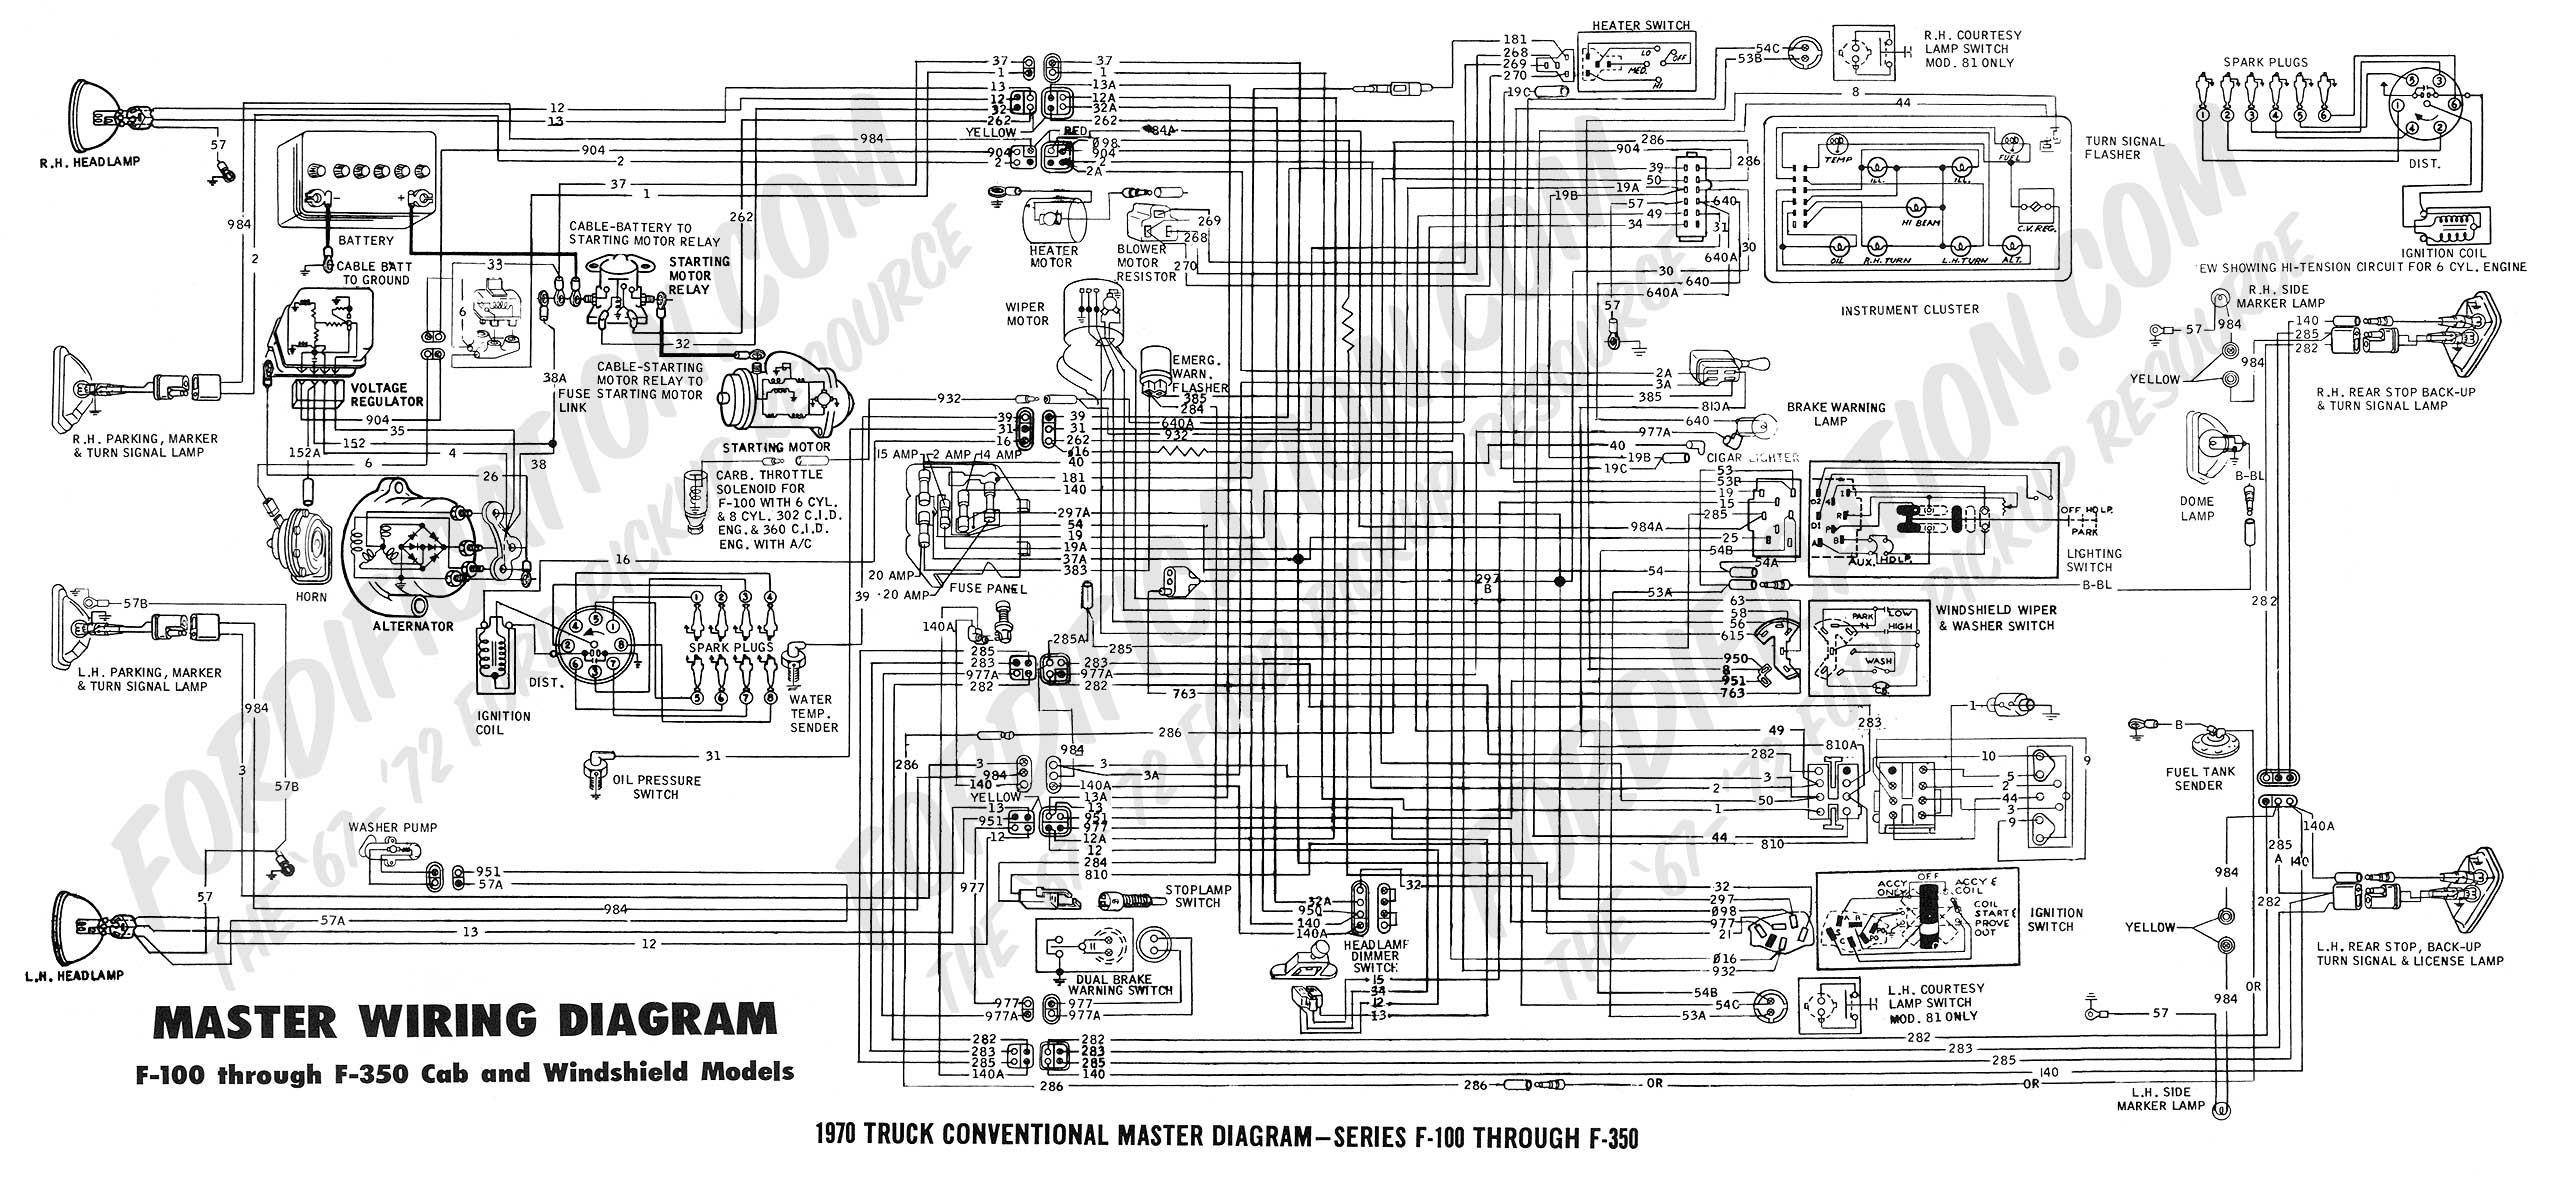 wiring diagram 70_master ford truck technical drawings and schematics section h wiring Rock Layes Tilt Diagram at webbmarketing.co